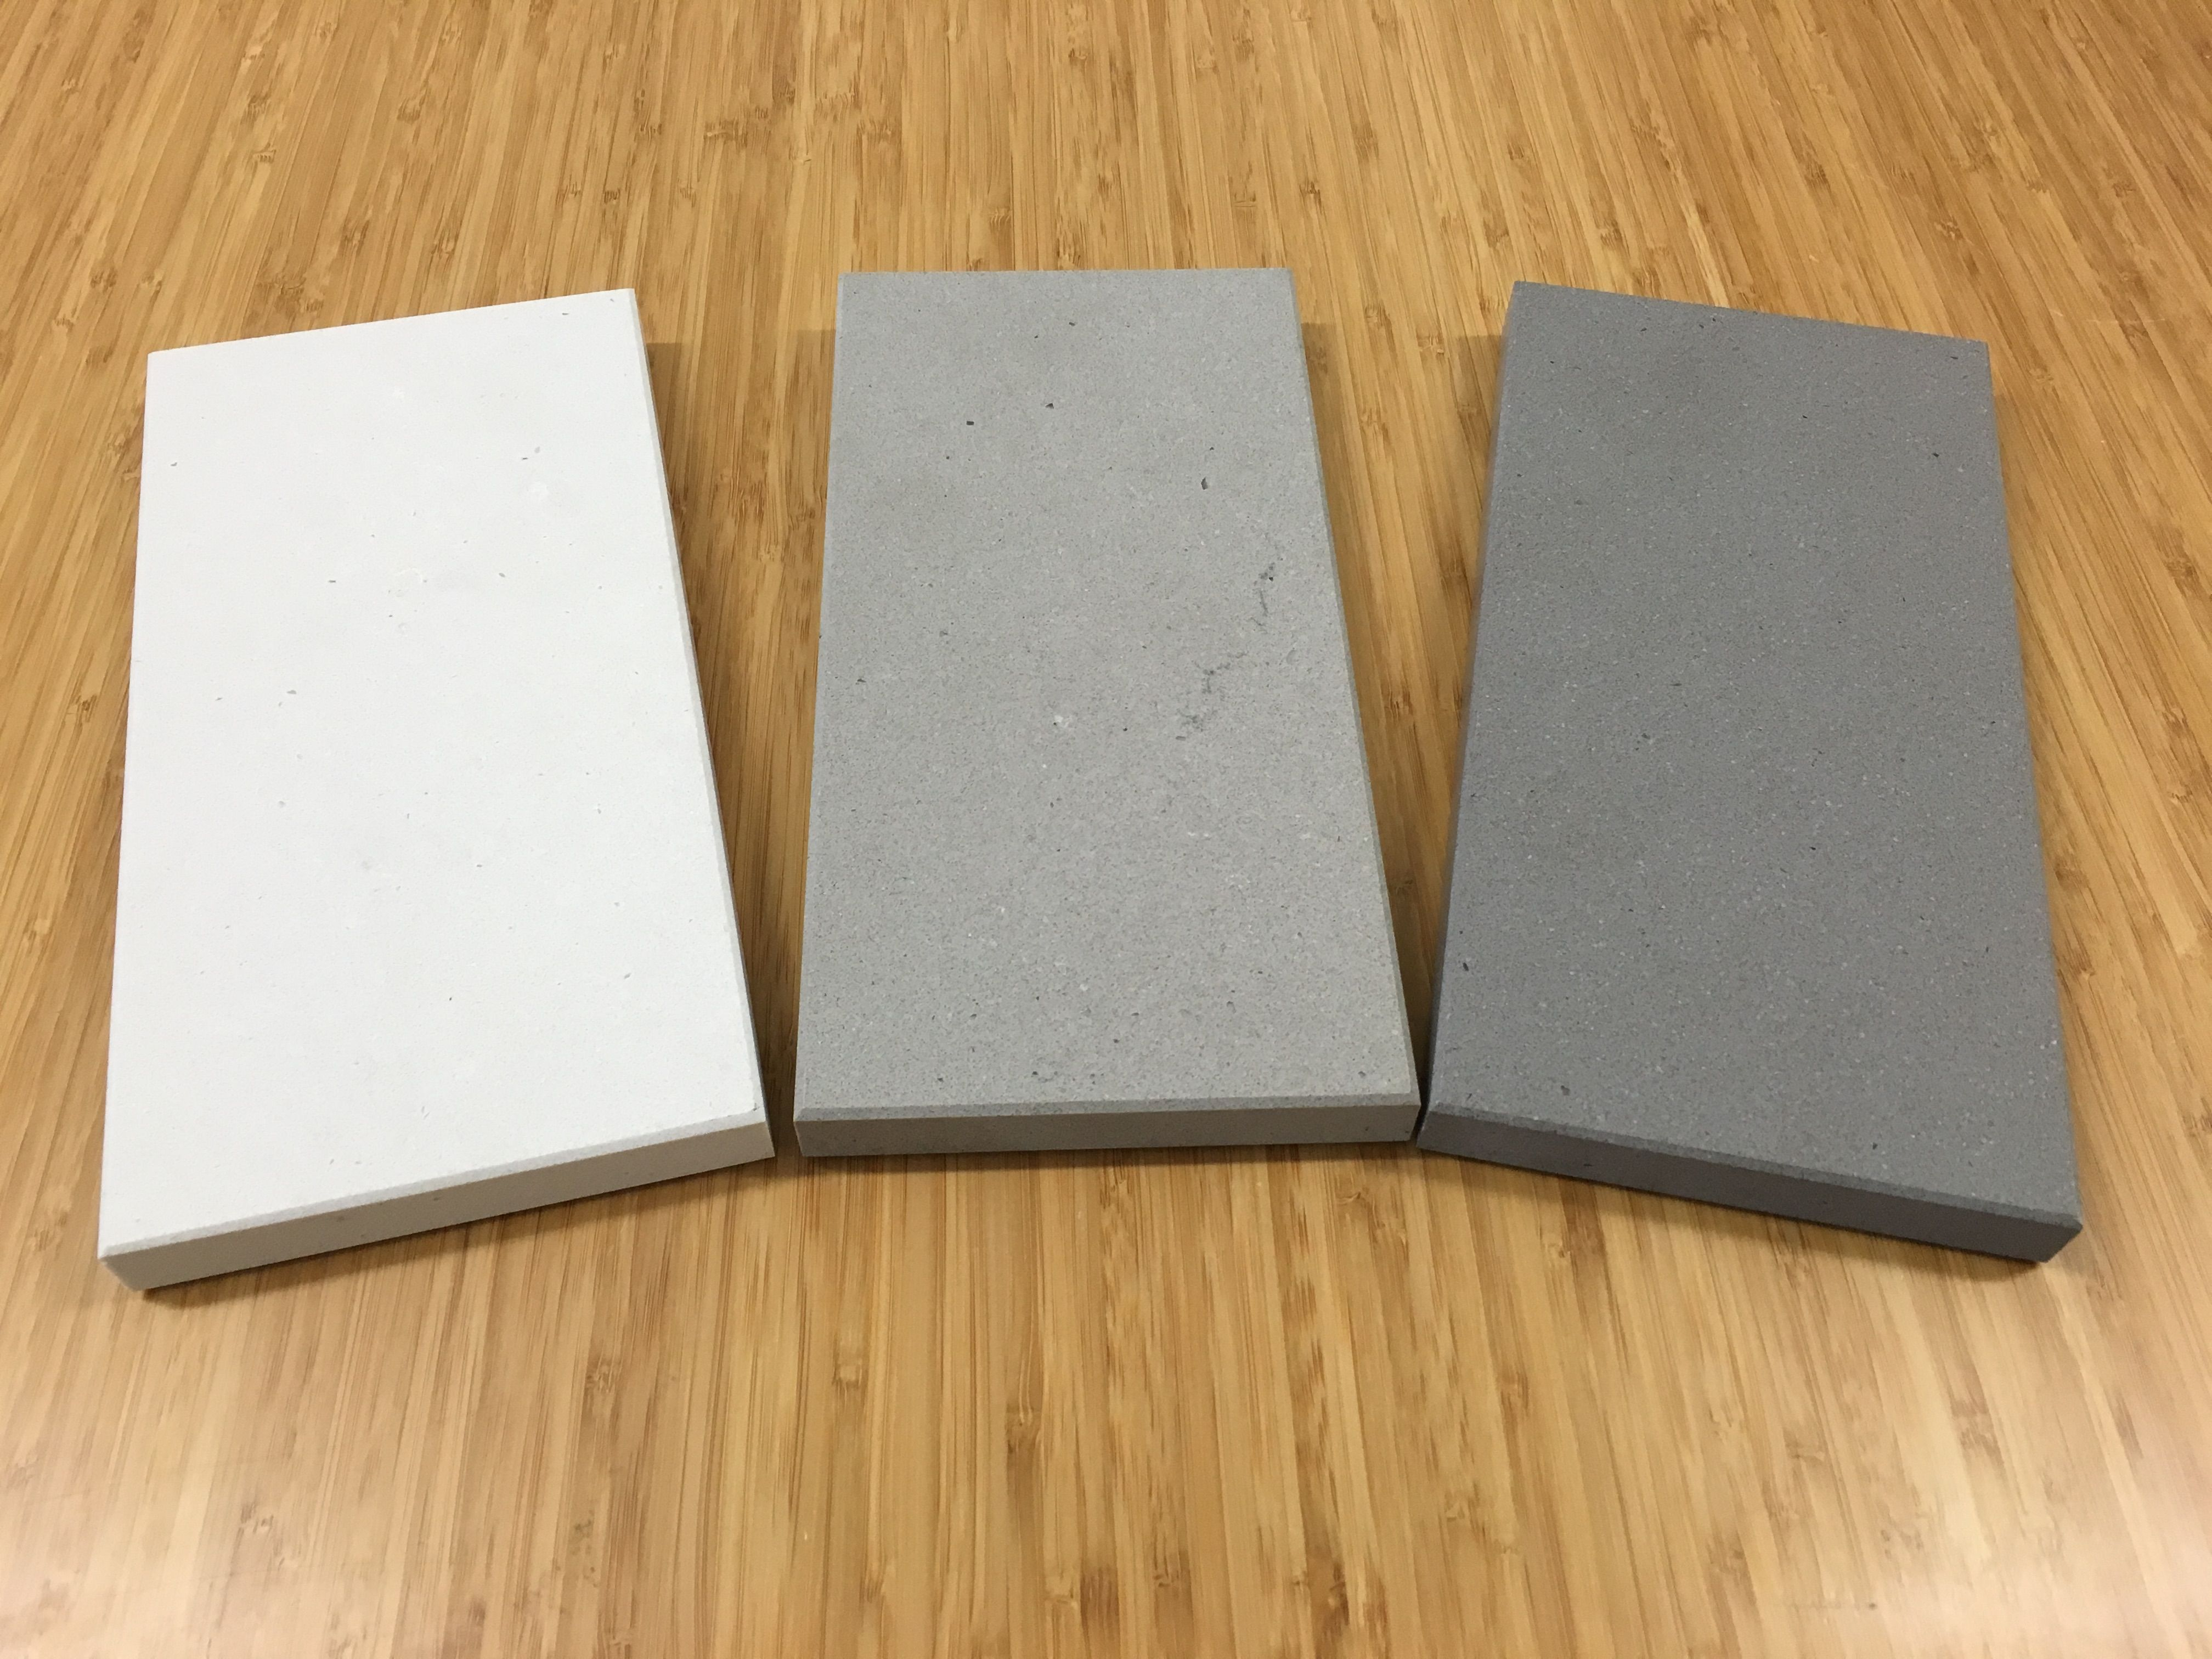 Most Popular Colour Cesar Stone For Kitchen Benchtops And Island